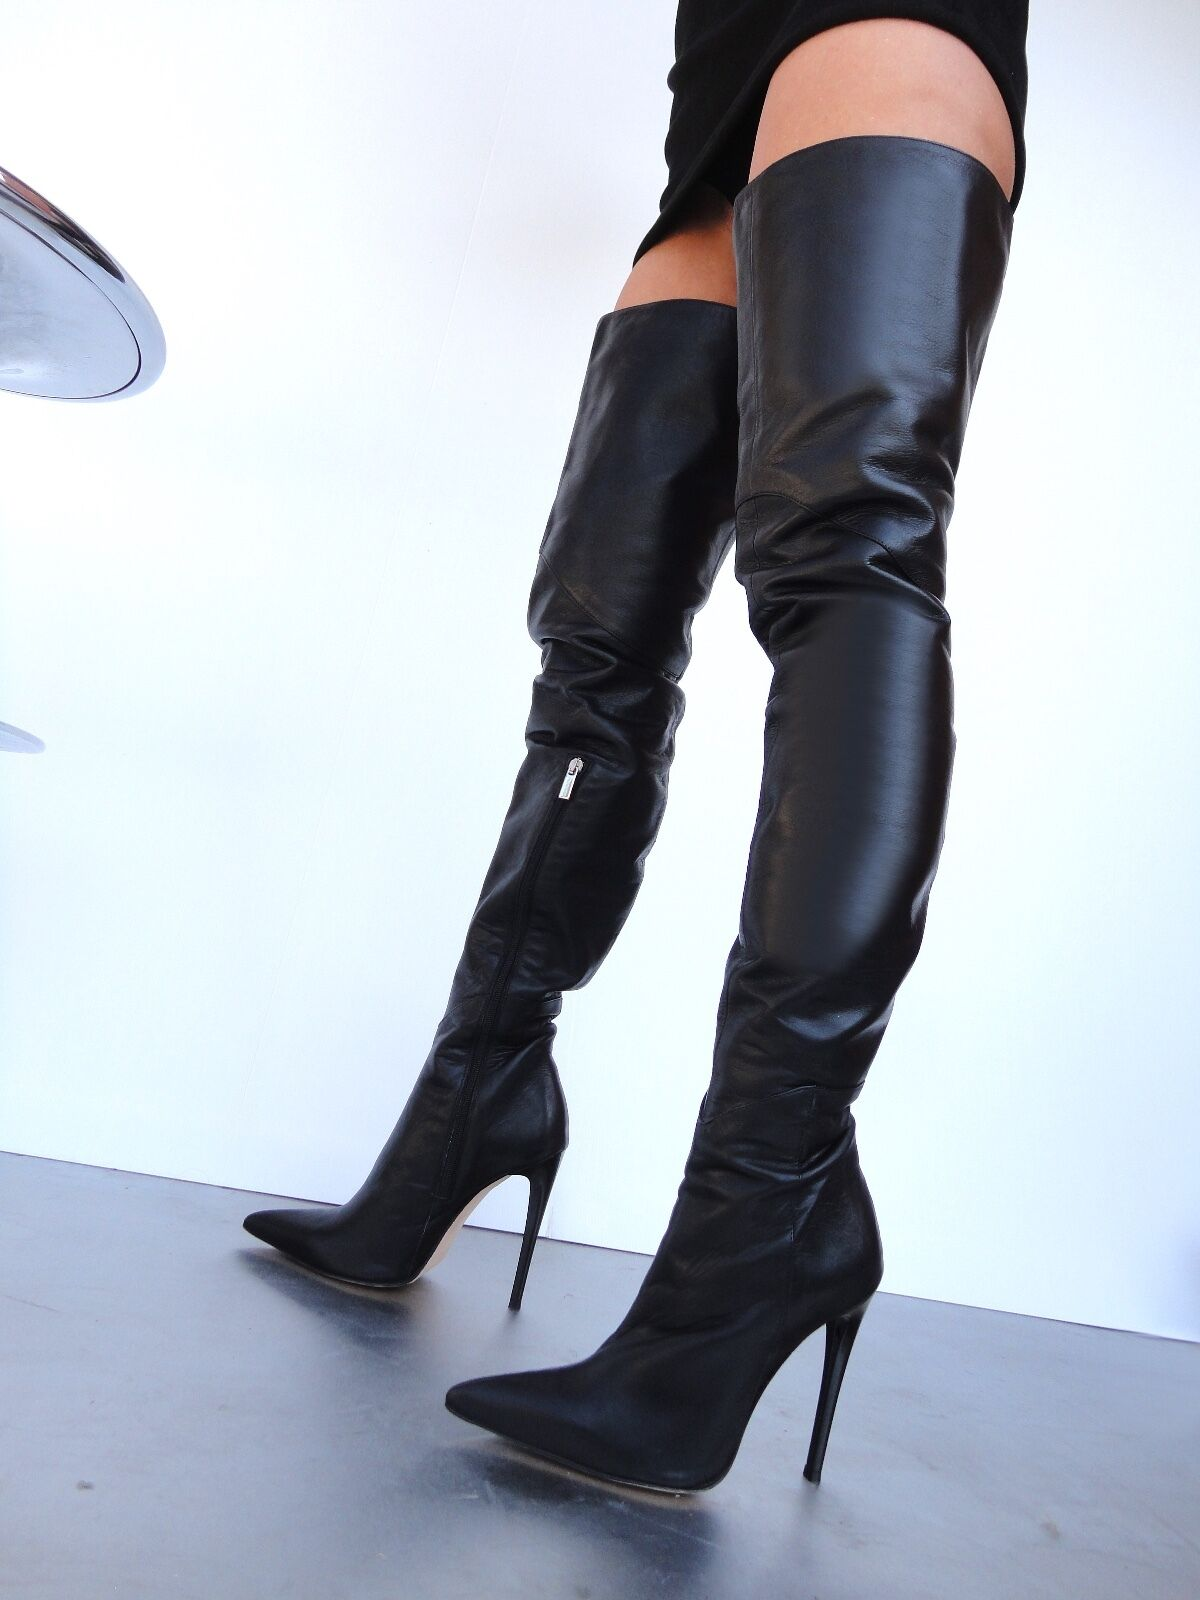 CQ COUTURE CUSTOM LUXURY BOOTS OVERKNEE BOOTS LUXURY STIEFEL STIVALI SHOES LEATHER NERO 42 ae5107